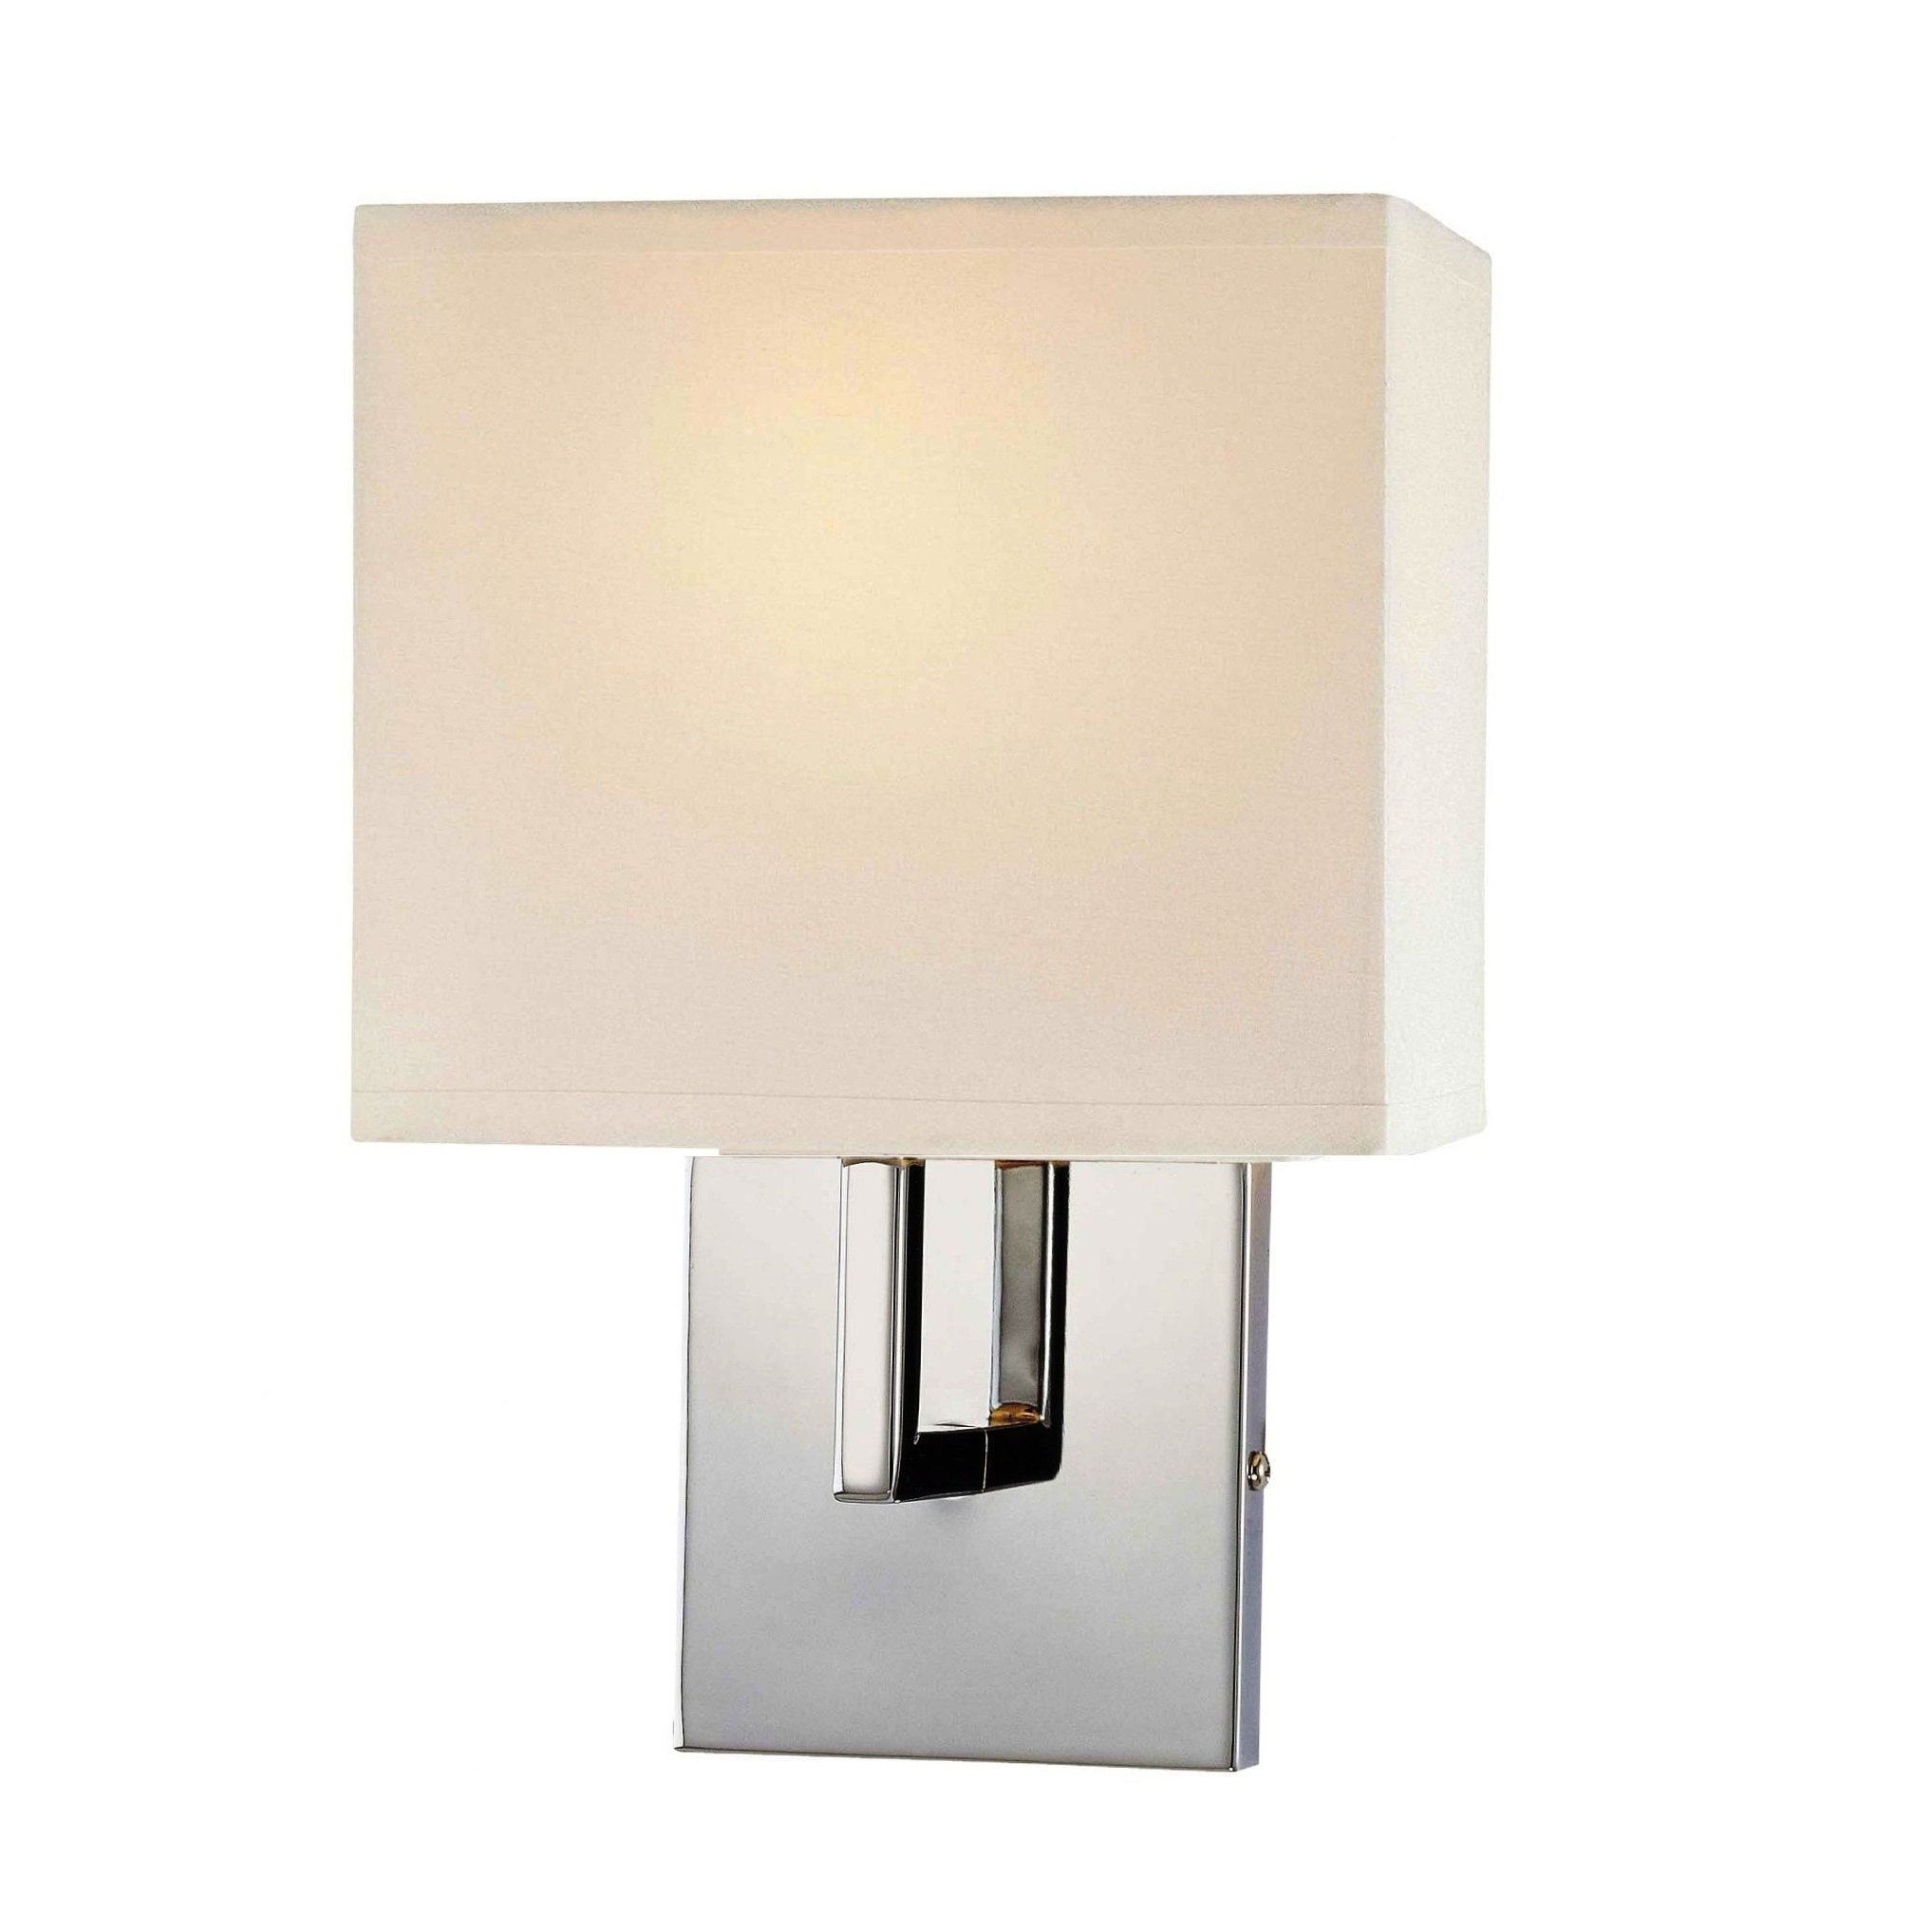 George Kovacs Wall Sconce Chrome : George Kovacs 1 Light Wall Sconce In Chrome l Brilliant Source Lighting